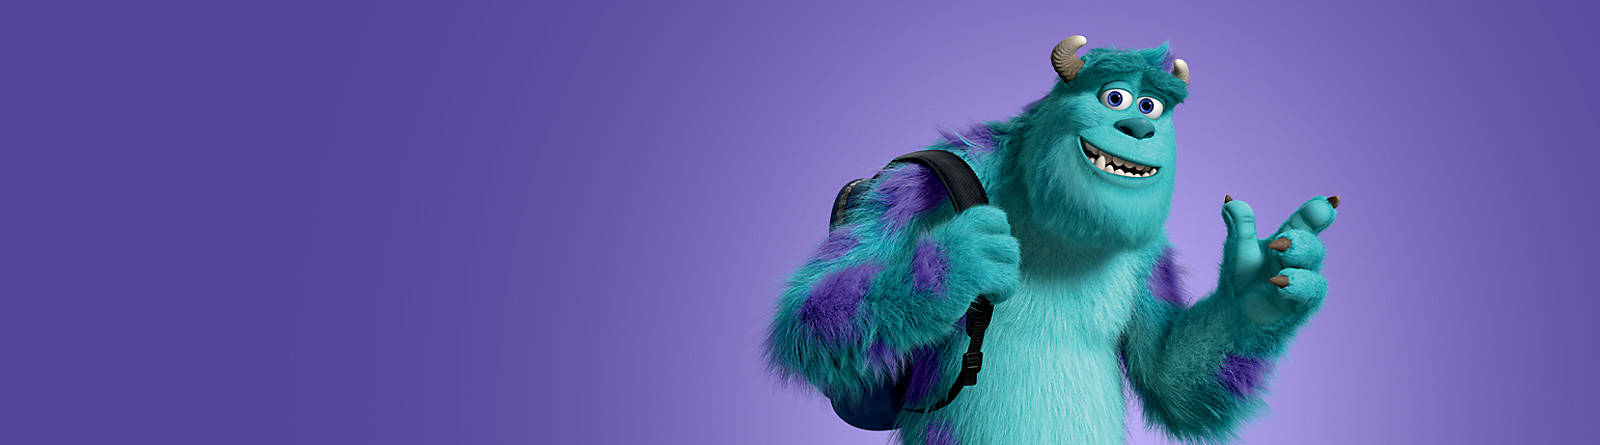 Sulley Discover our range of Sulley from Monsters Inc soft toys, accessories, figurines and more